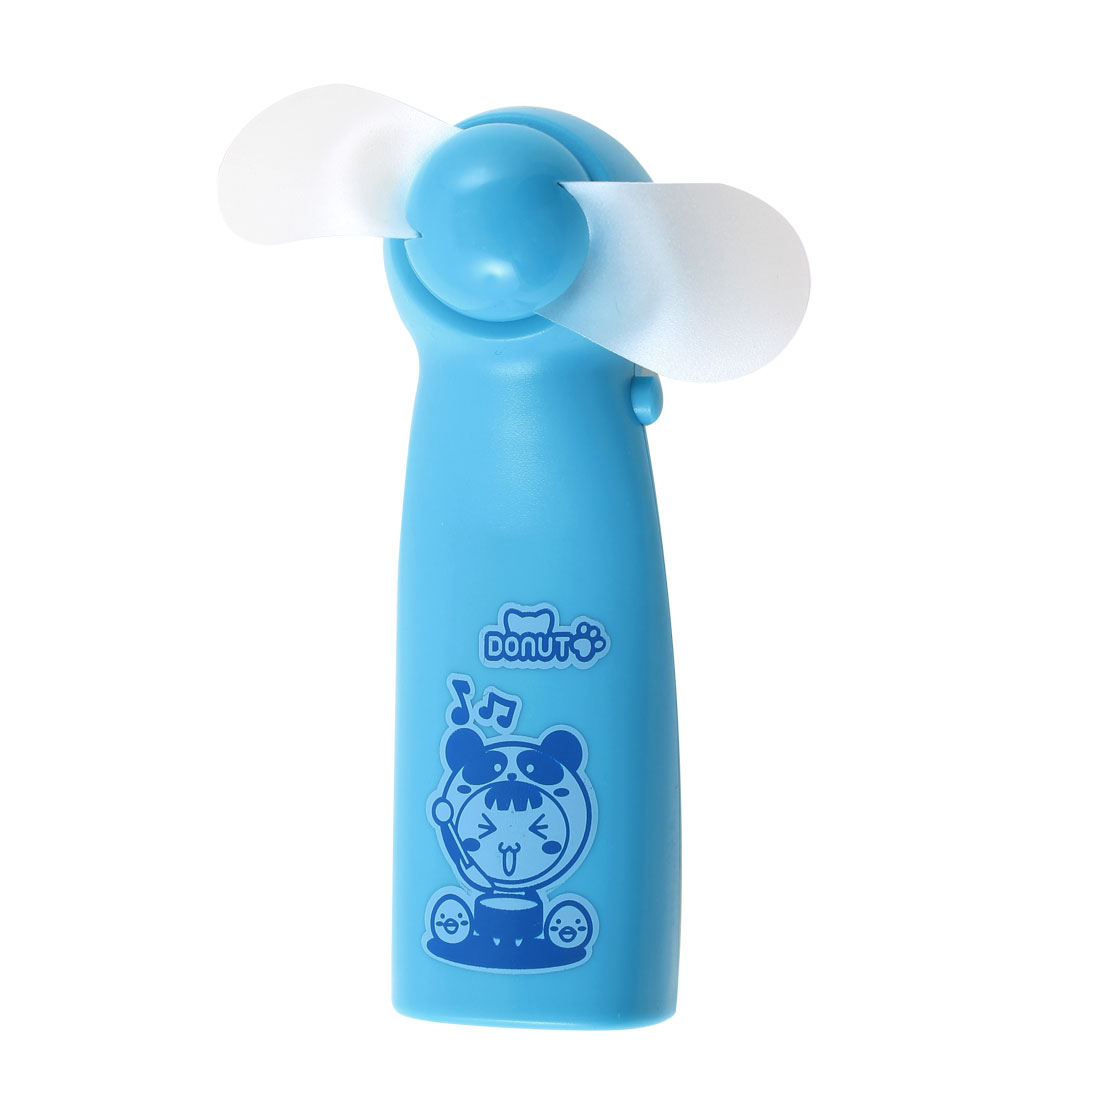 Portable Battery Powered Cartoon Pattern Soft Flabellum Super Mute Handheld Mini Cooling Fan Cooler Blue